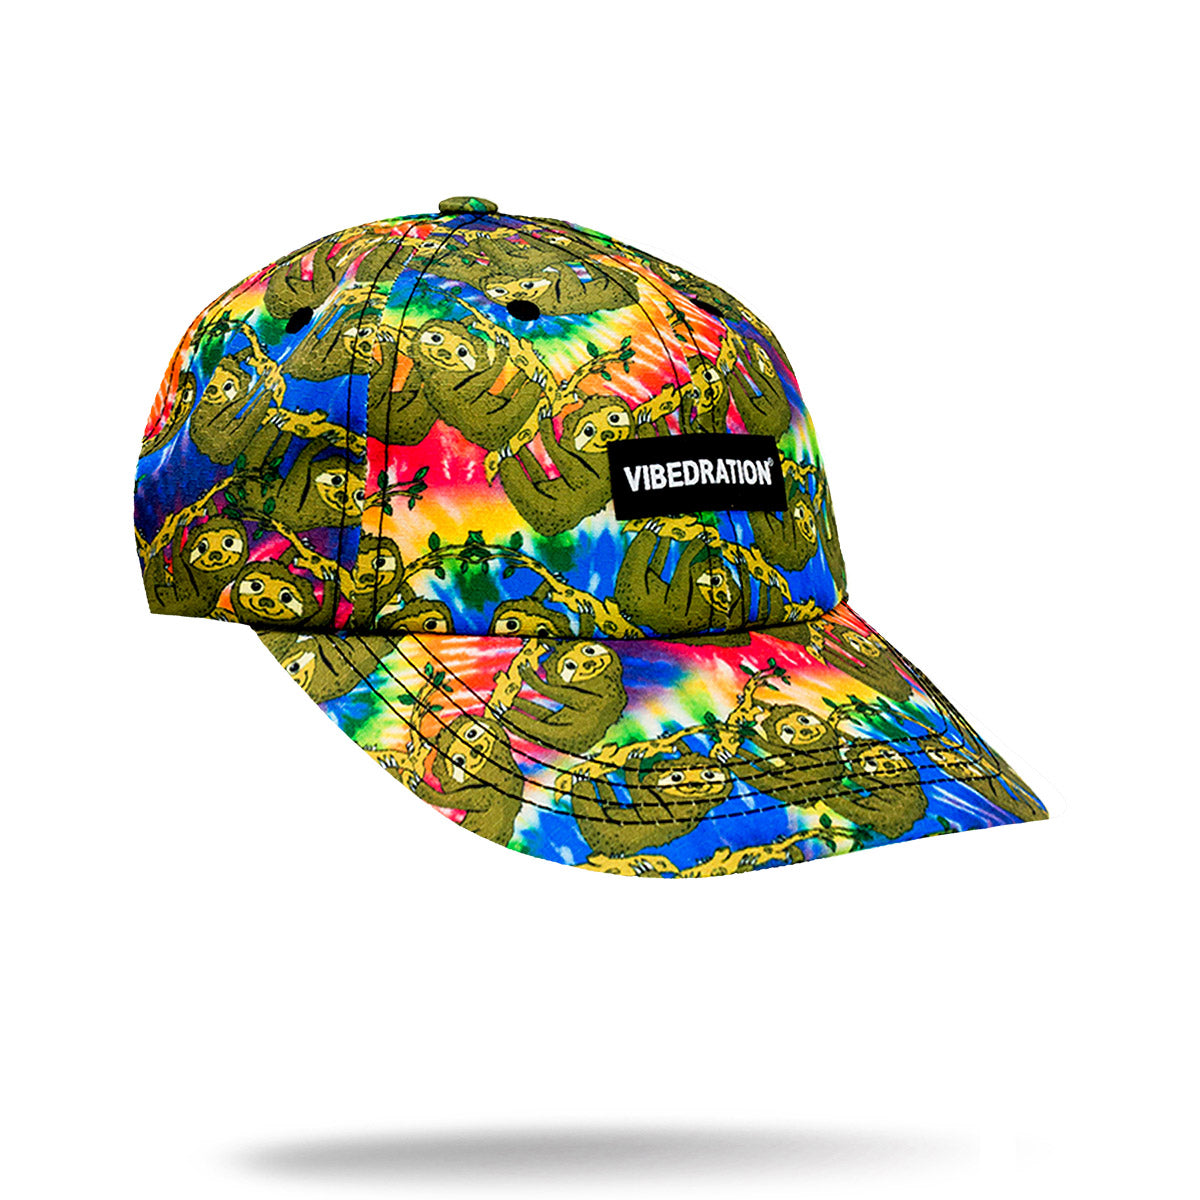 Tie Dye Sloth Printed hat for festivals